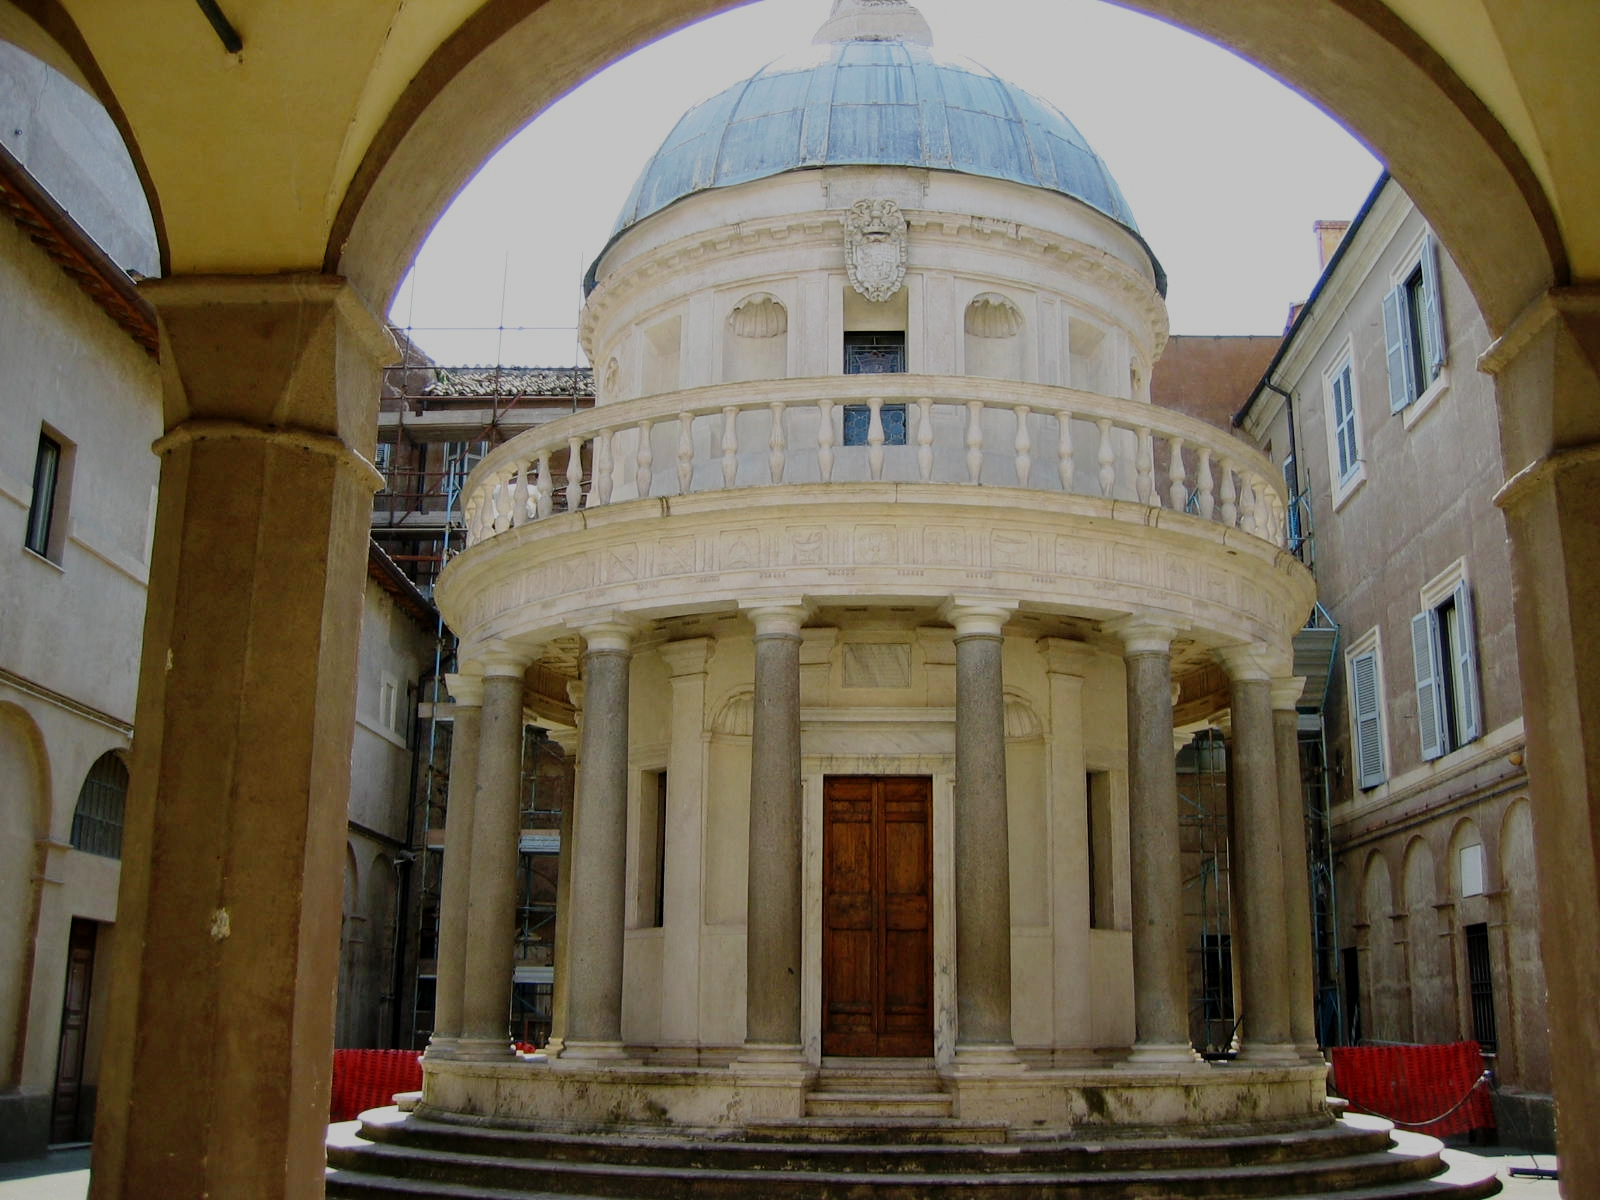 Architecture De La Renaissance Of Rome Architecture Italy The Tempietto 1216 World All